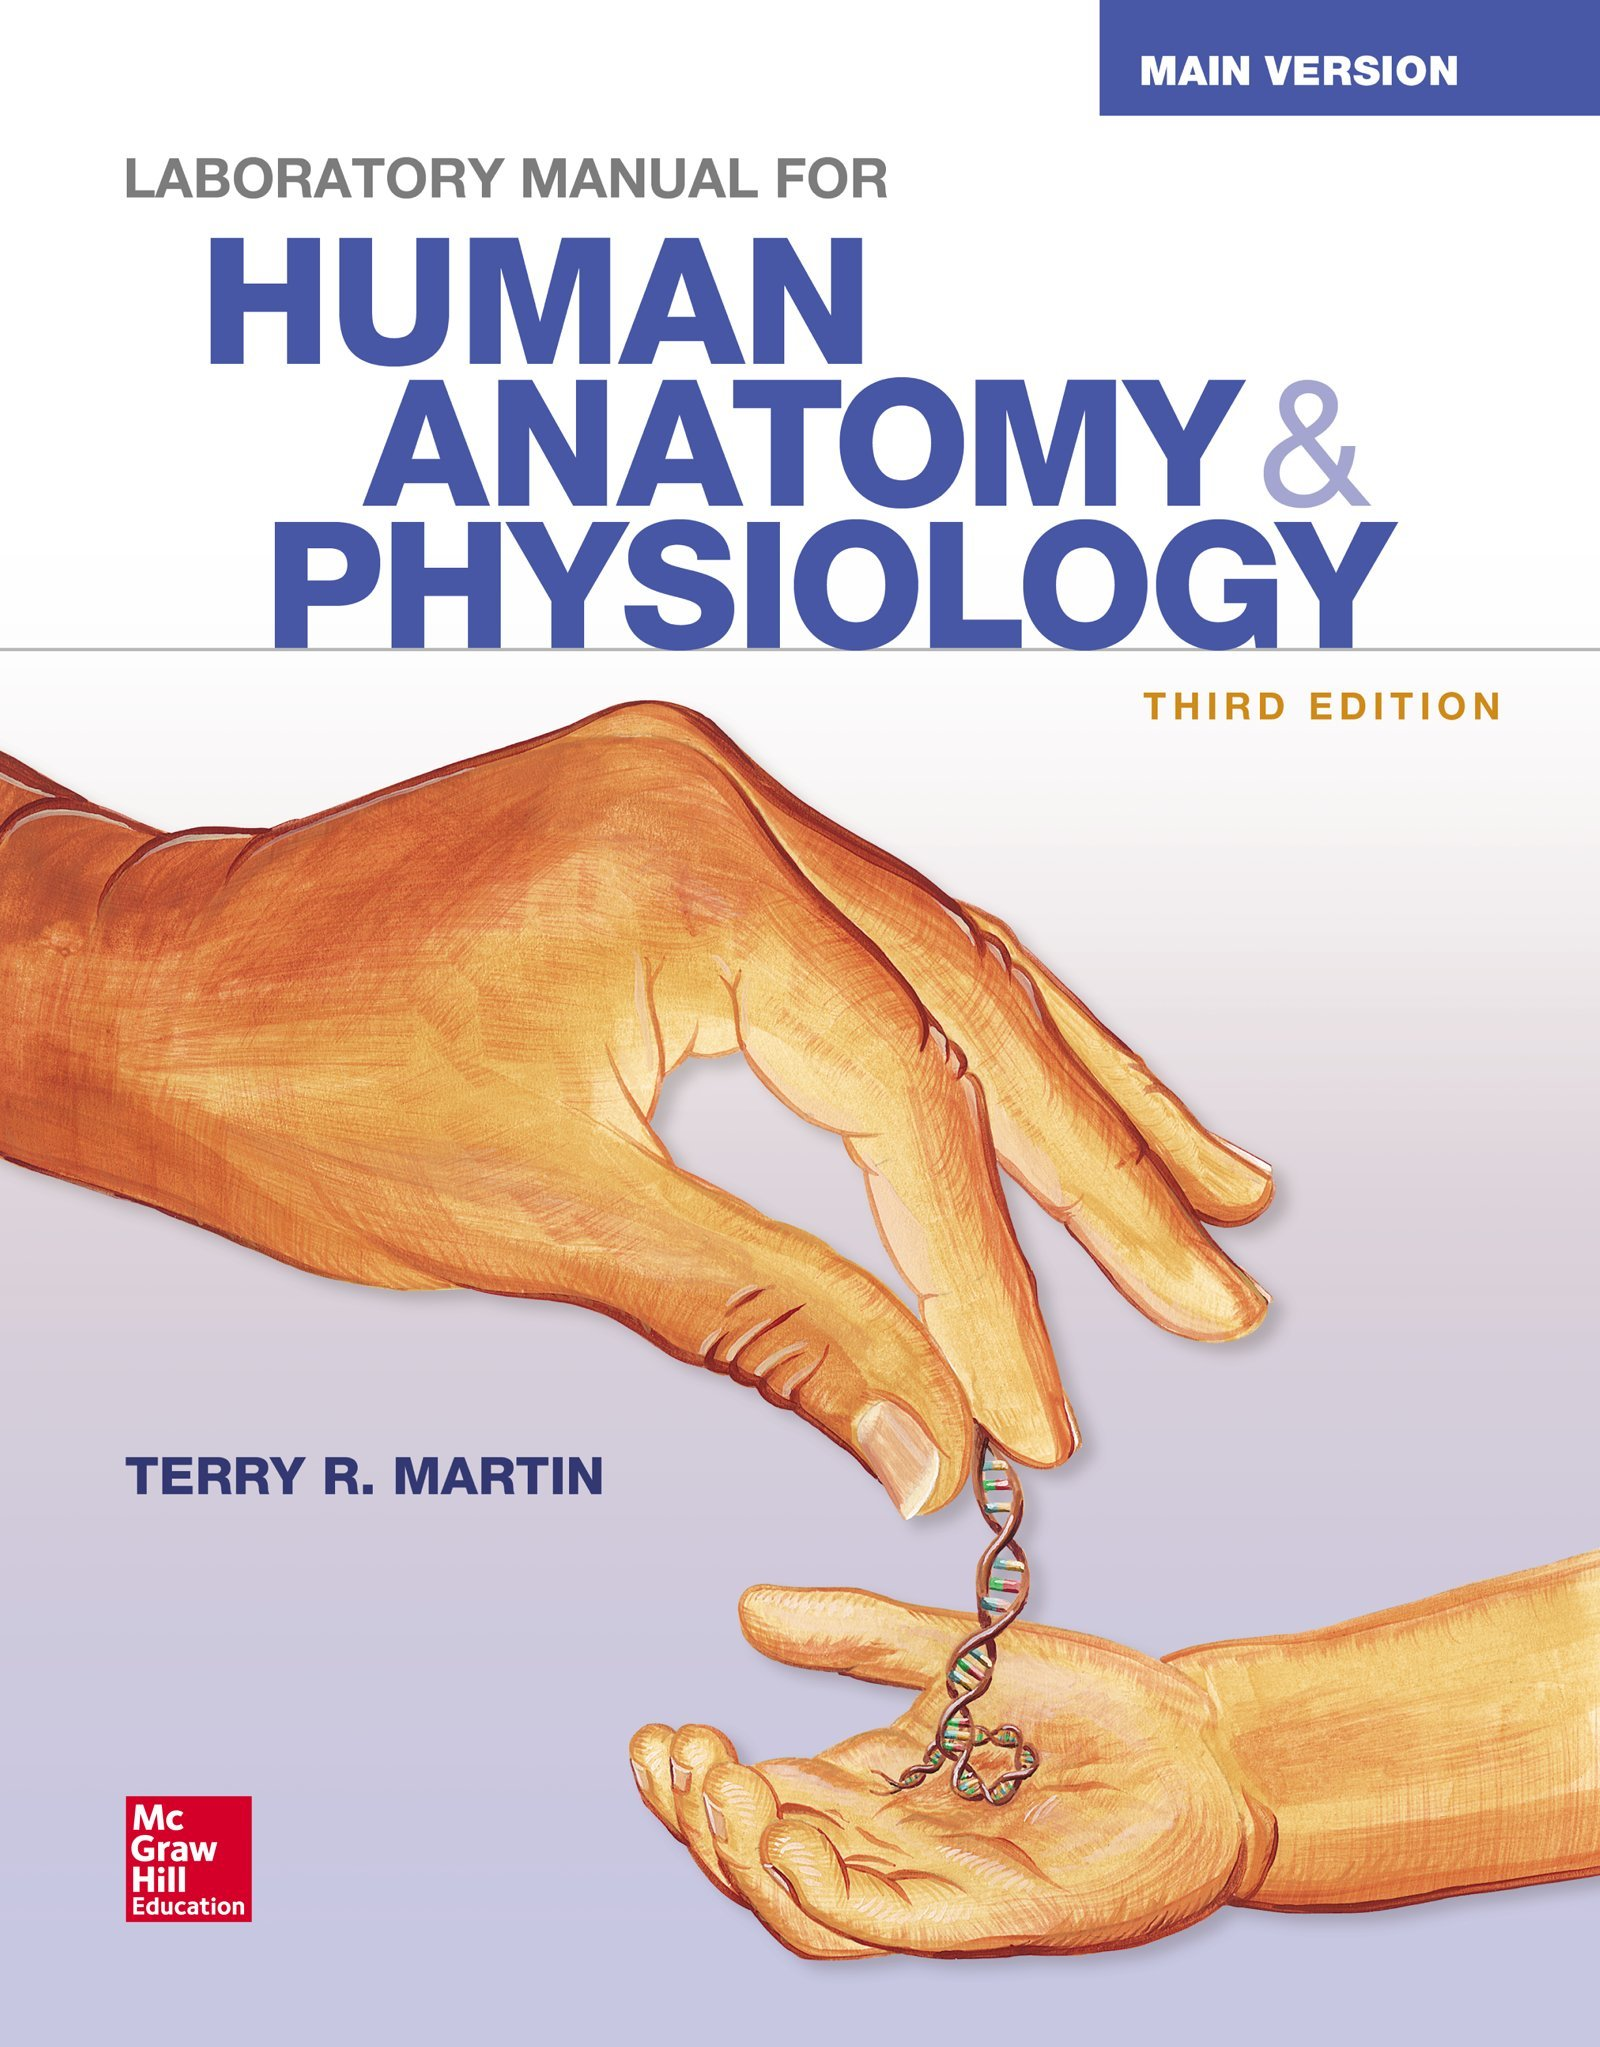 Laboratory Manual for Human Anatomy & Physiology Main Version: Terry R.  Martin: 9781259298653: Anatomy & Physiology: Amazon Canada